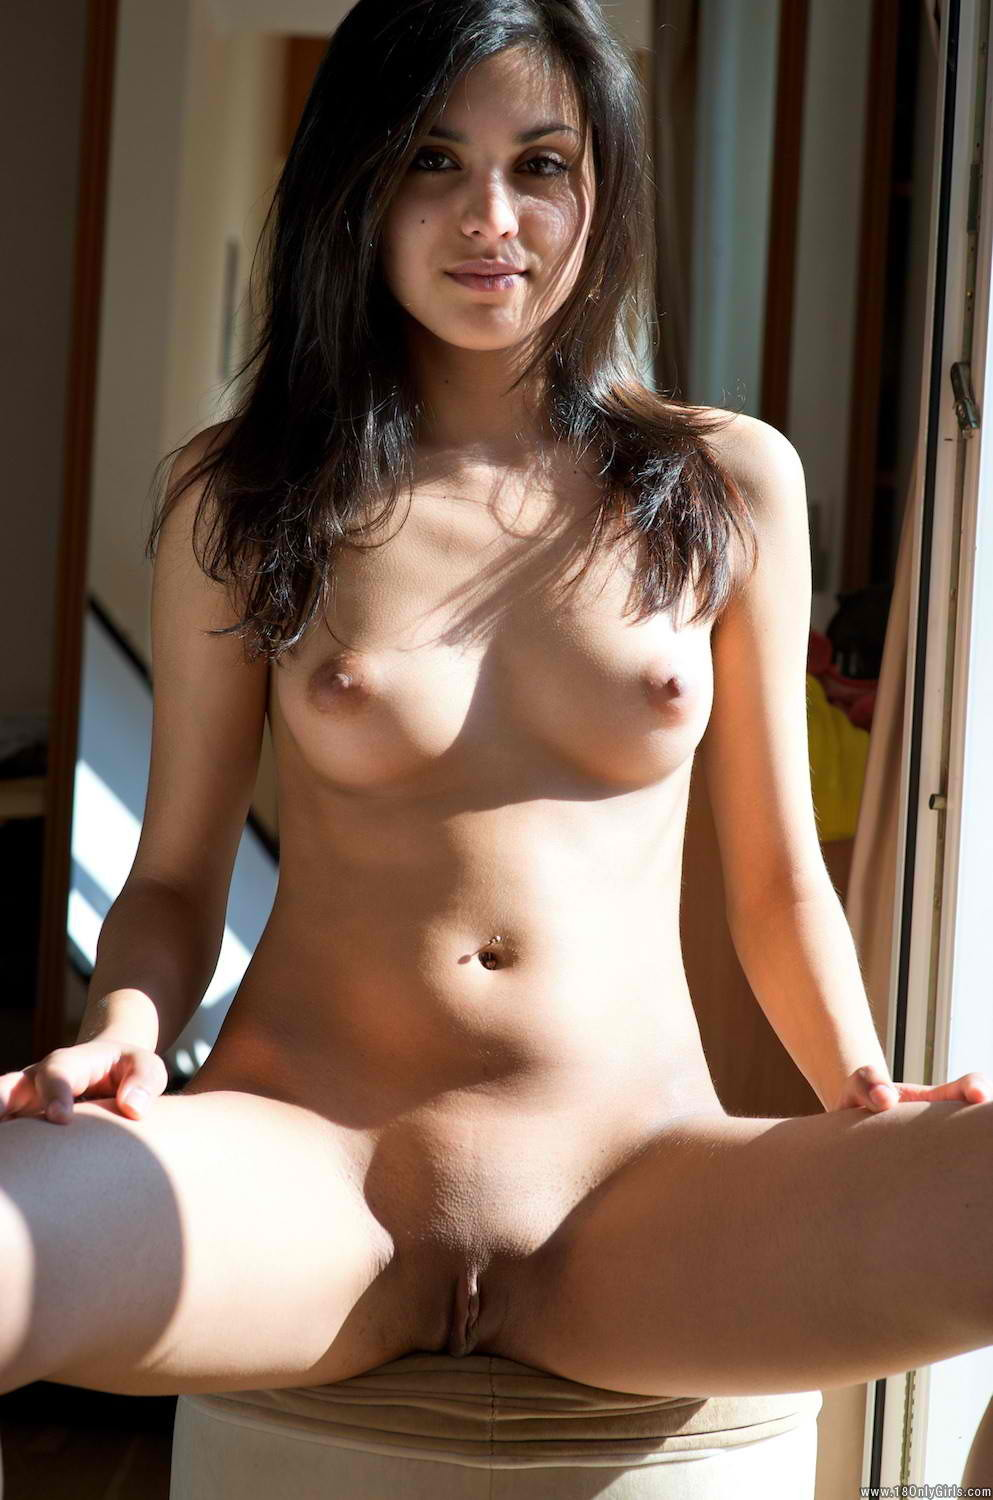 showing porn images for sans tori el sex porn #Leila #pink #scarf #brunette #eyecontact #perky #perfecttits #shaved #shaven #shavedpussy #shavenpussy #sexy #hot #fit #thin